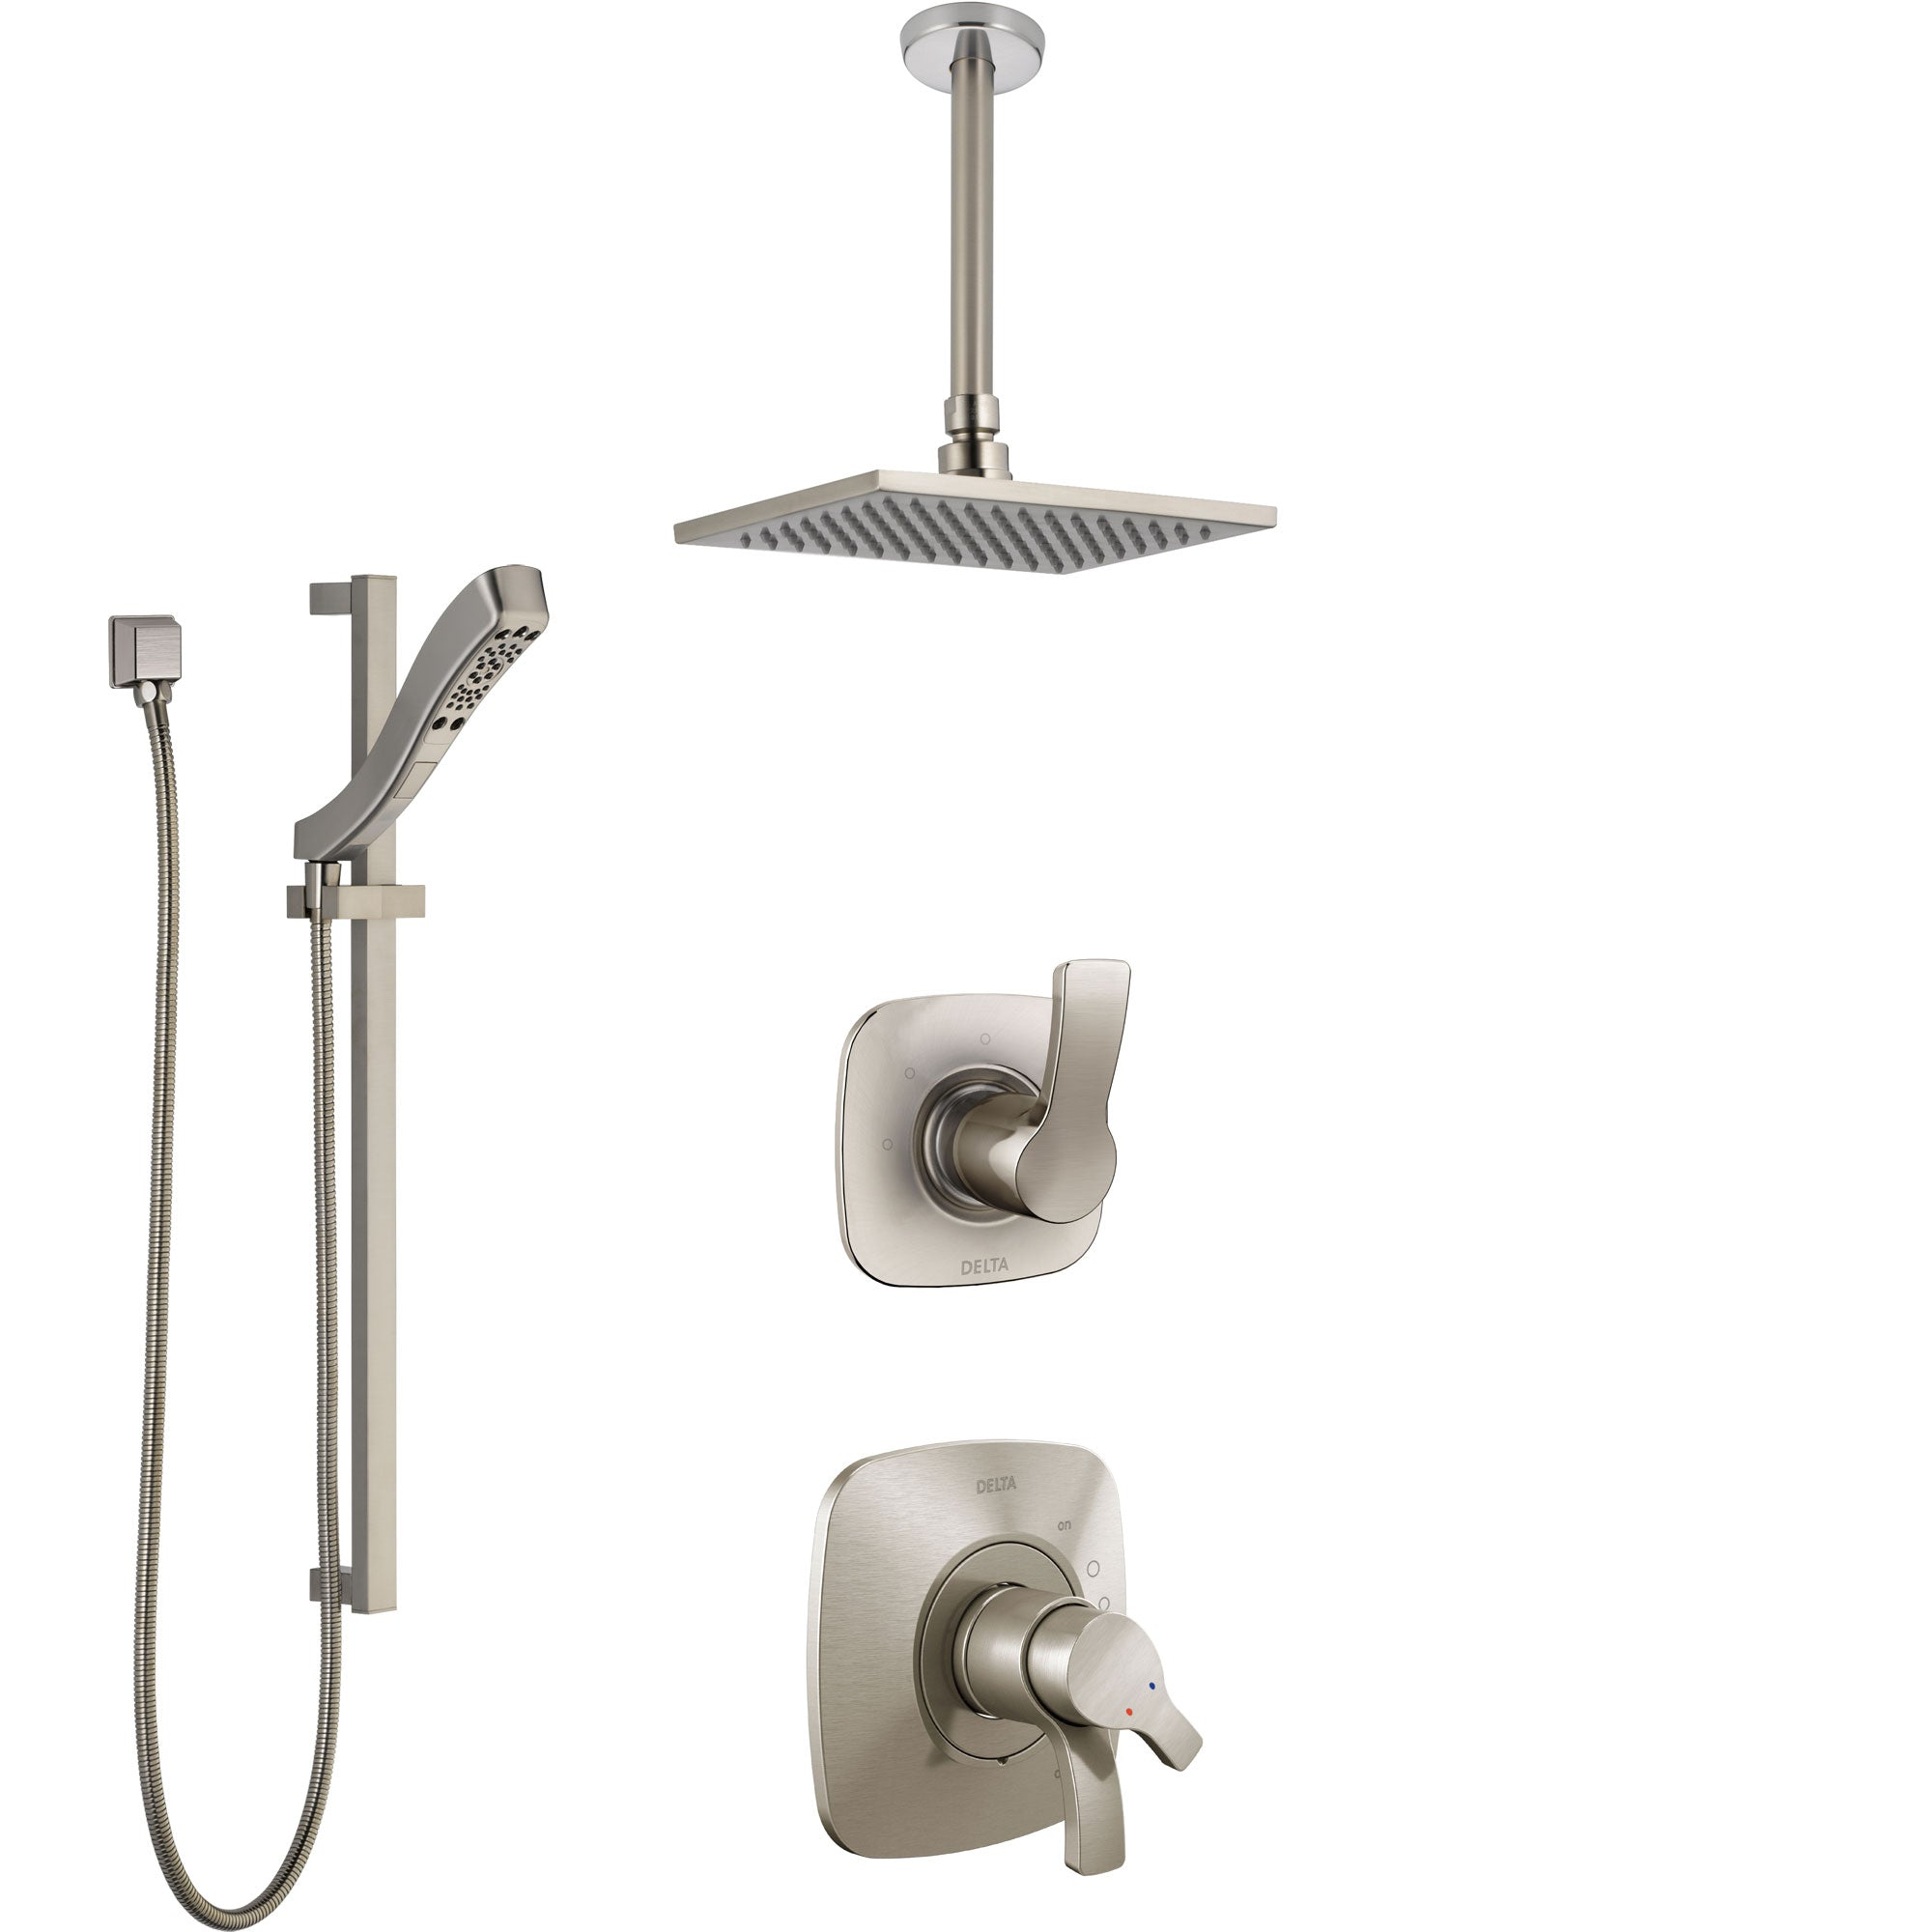 Delta Tesla Stainless Steel Finish Shower System with Dual Control Handle, Diverter, Ceiling Mount Showerhead, and Hand Shower with Slidebar SS1752SS5